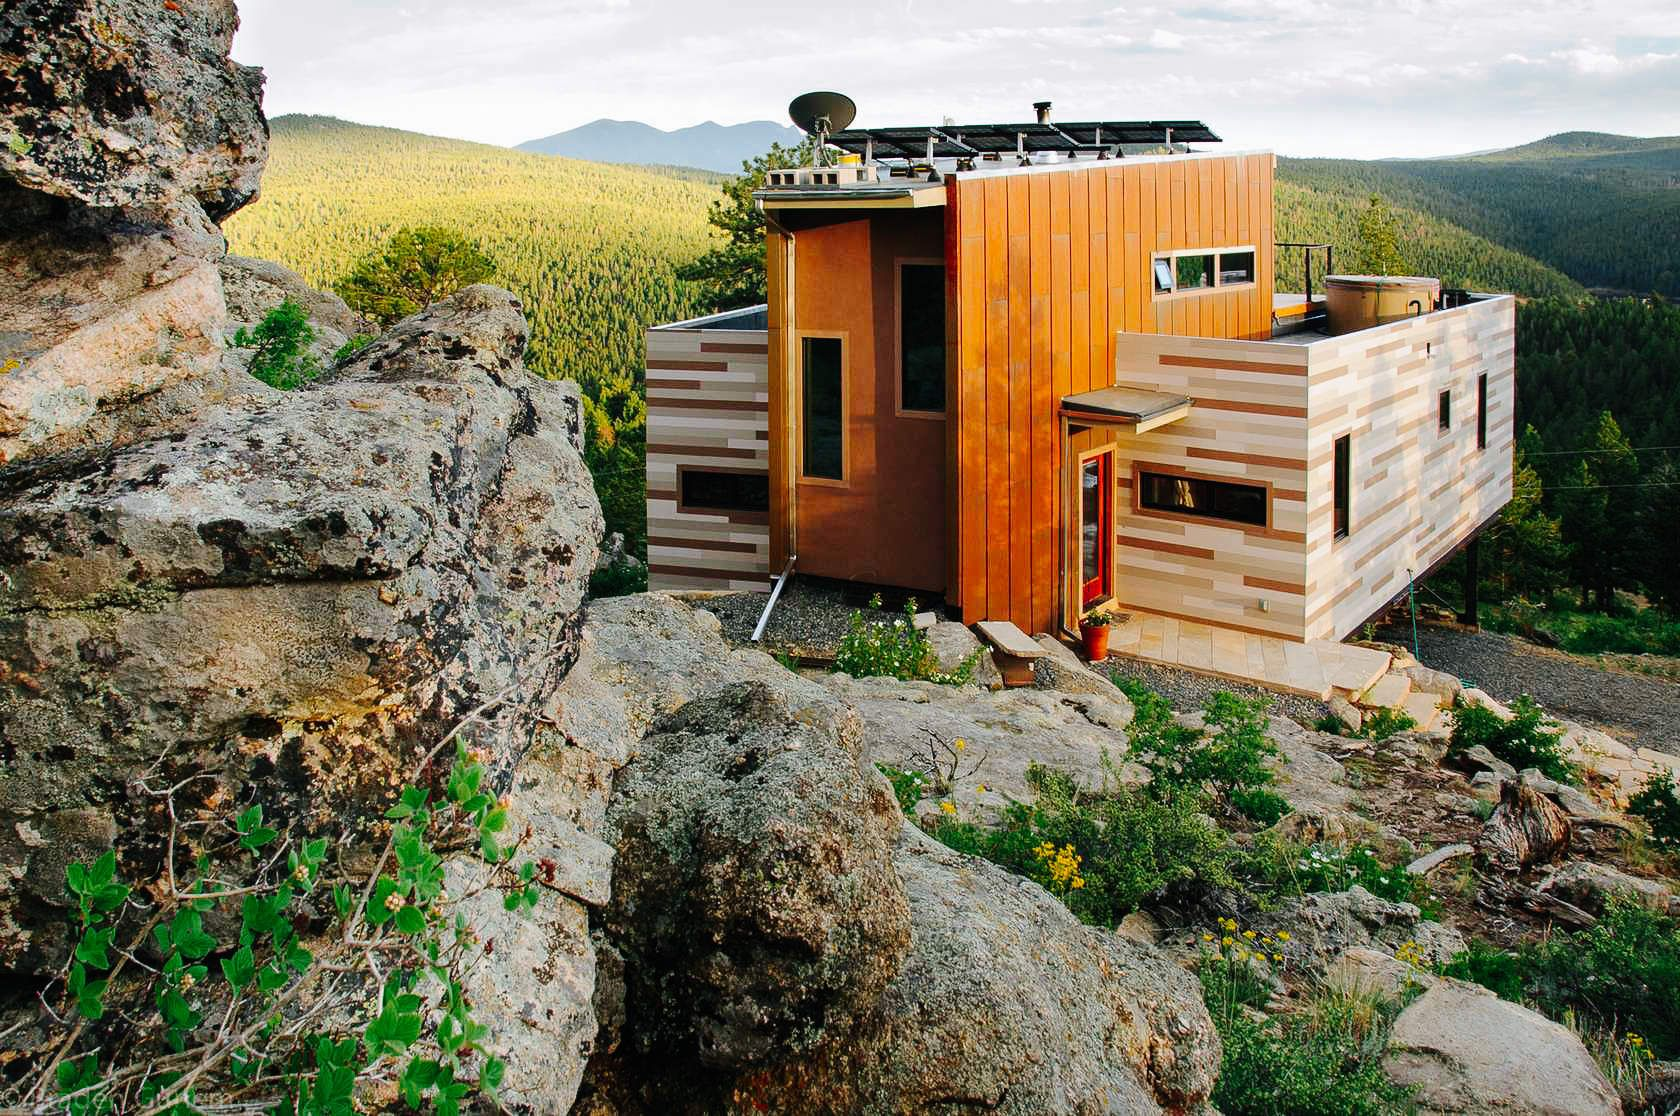 20 cool as hell shipping container homes | ships, house and tiny